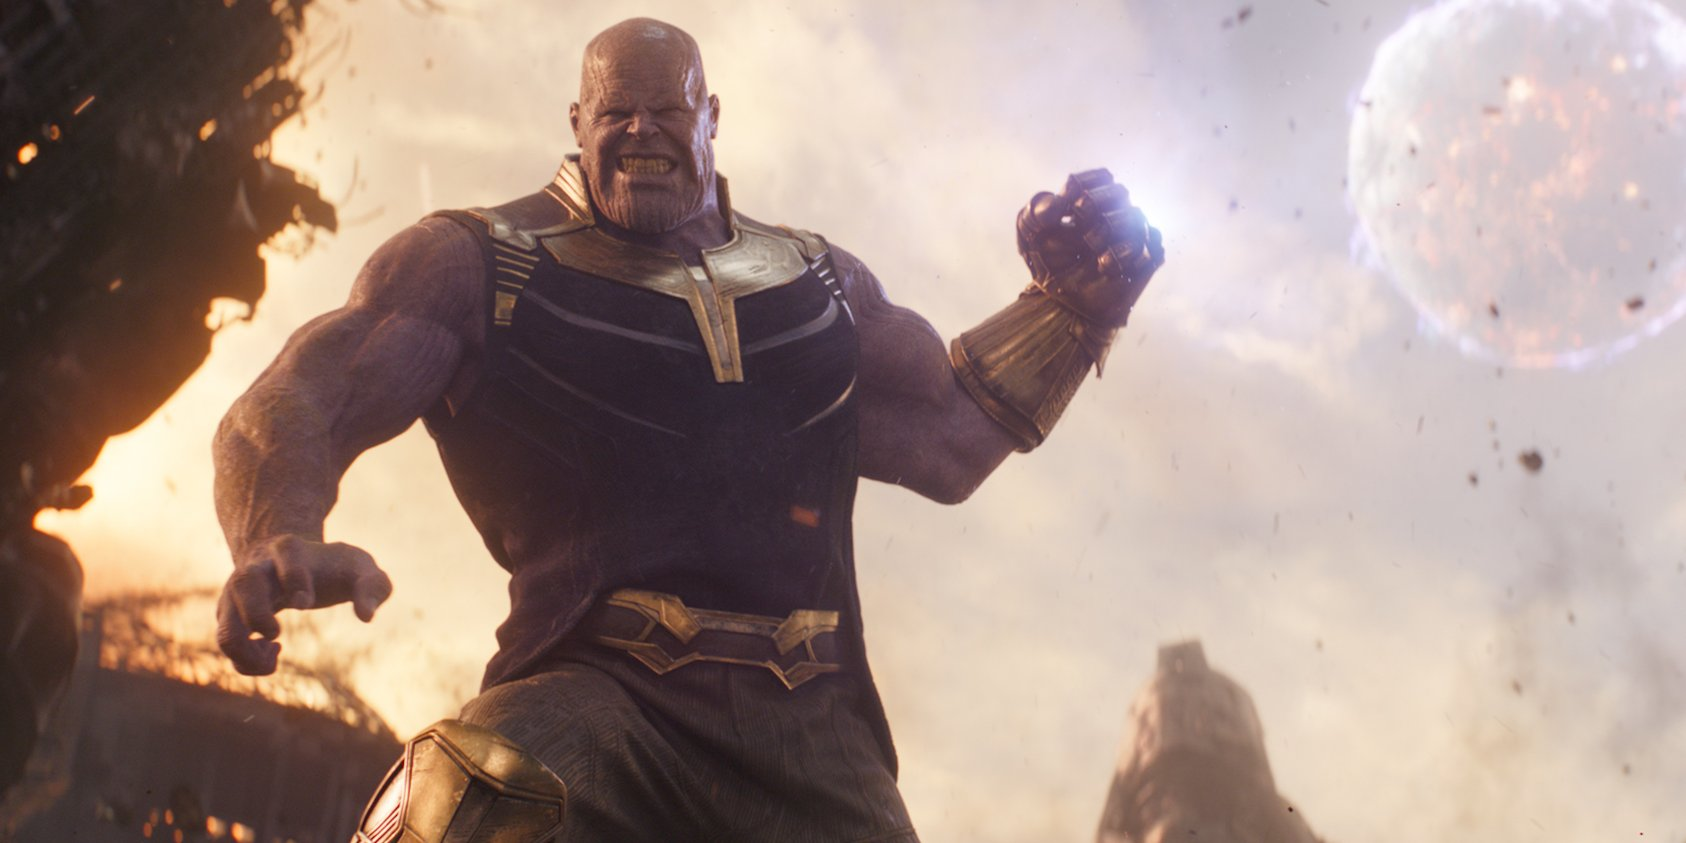 The AiPT! Podcast discusses their reactions to Marvel's Avengers: Infinity War